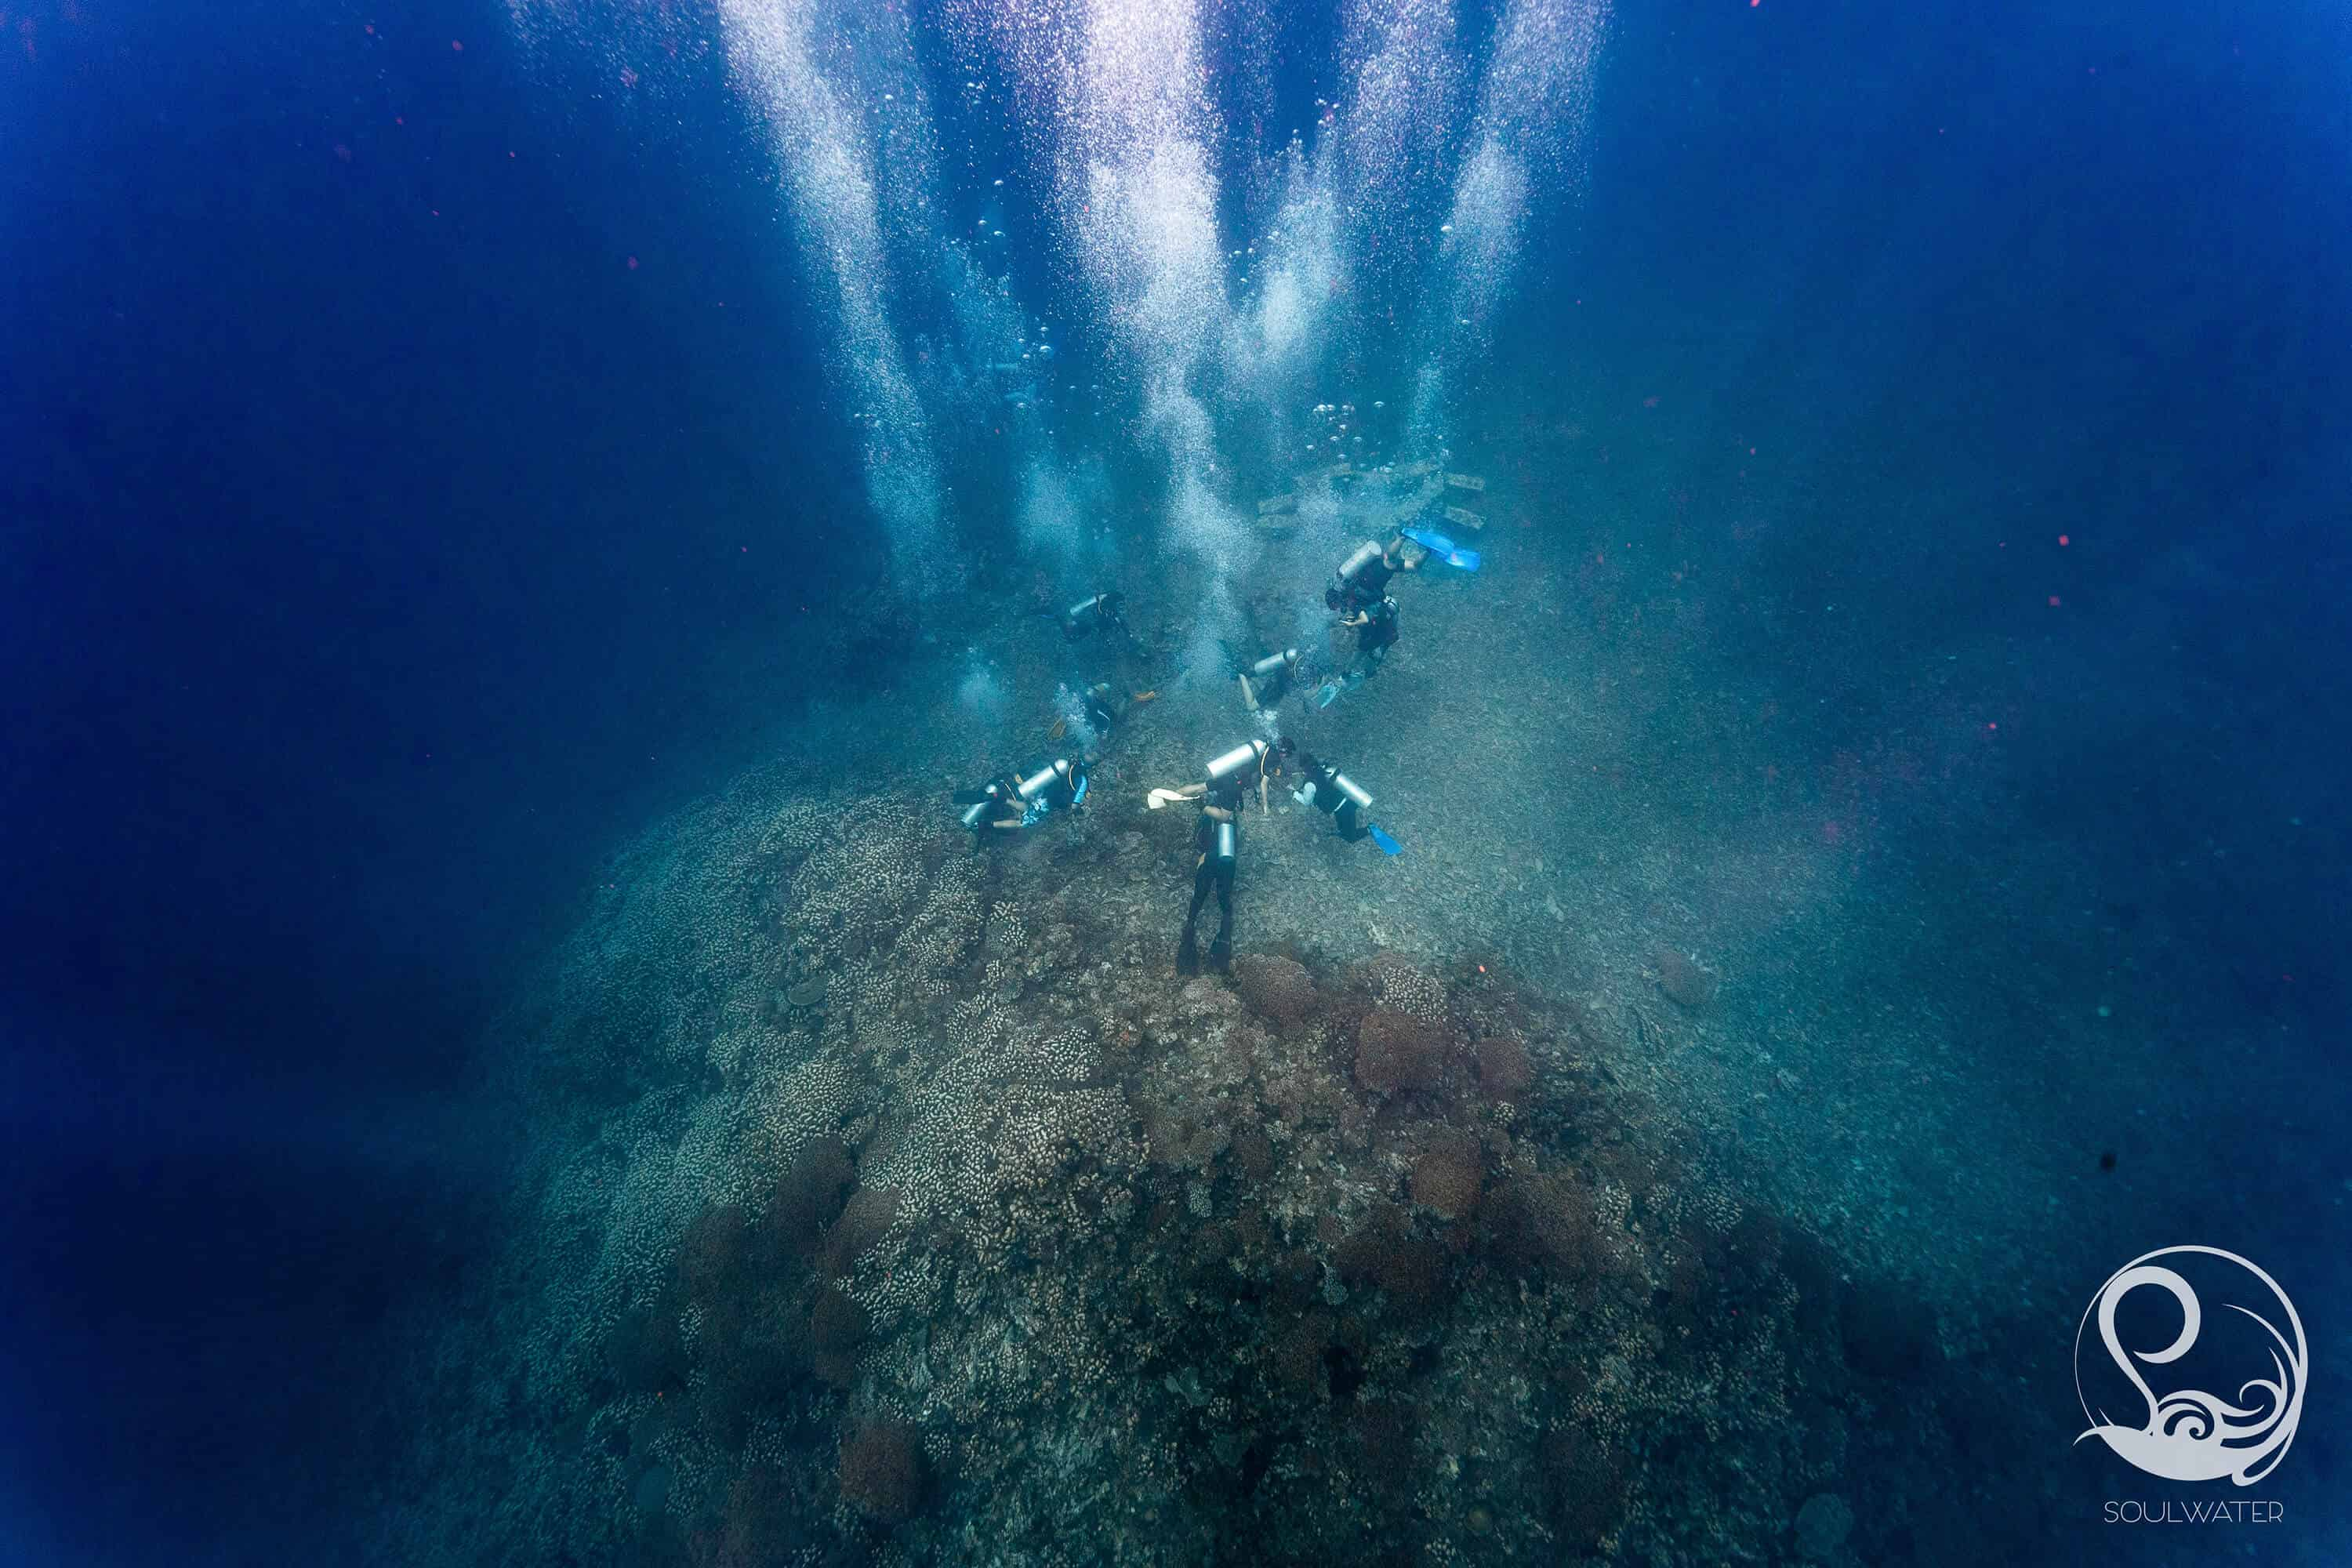 Shooting down from above over a group of divers on a coral pinnacle, blue water, bubbles